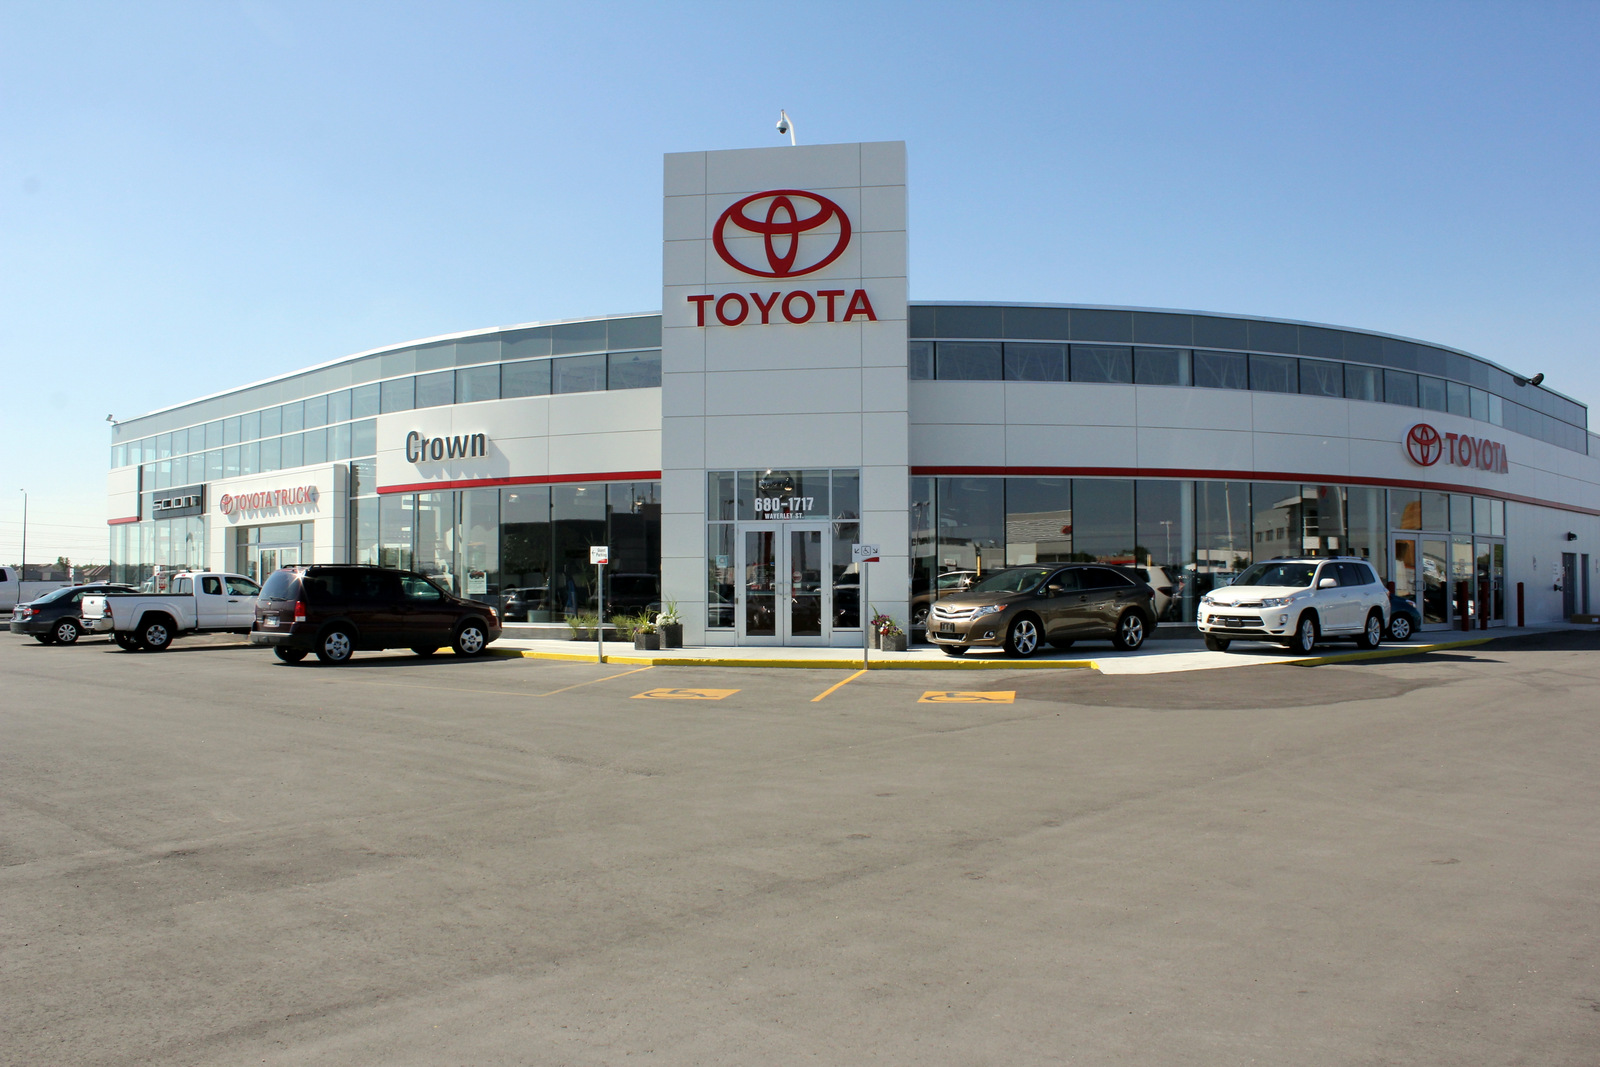 Crown Toyota Scion-0007